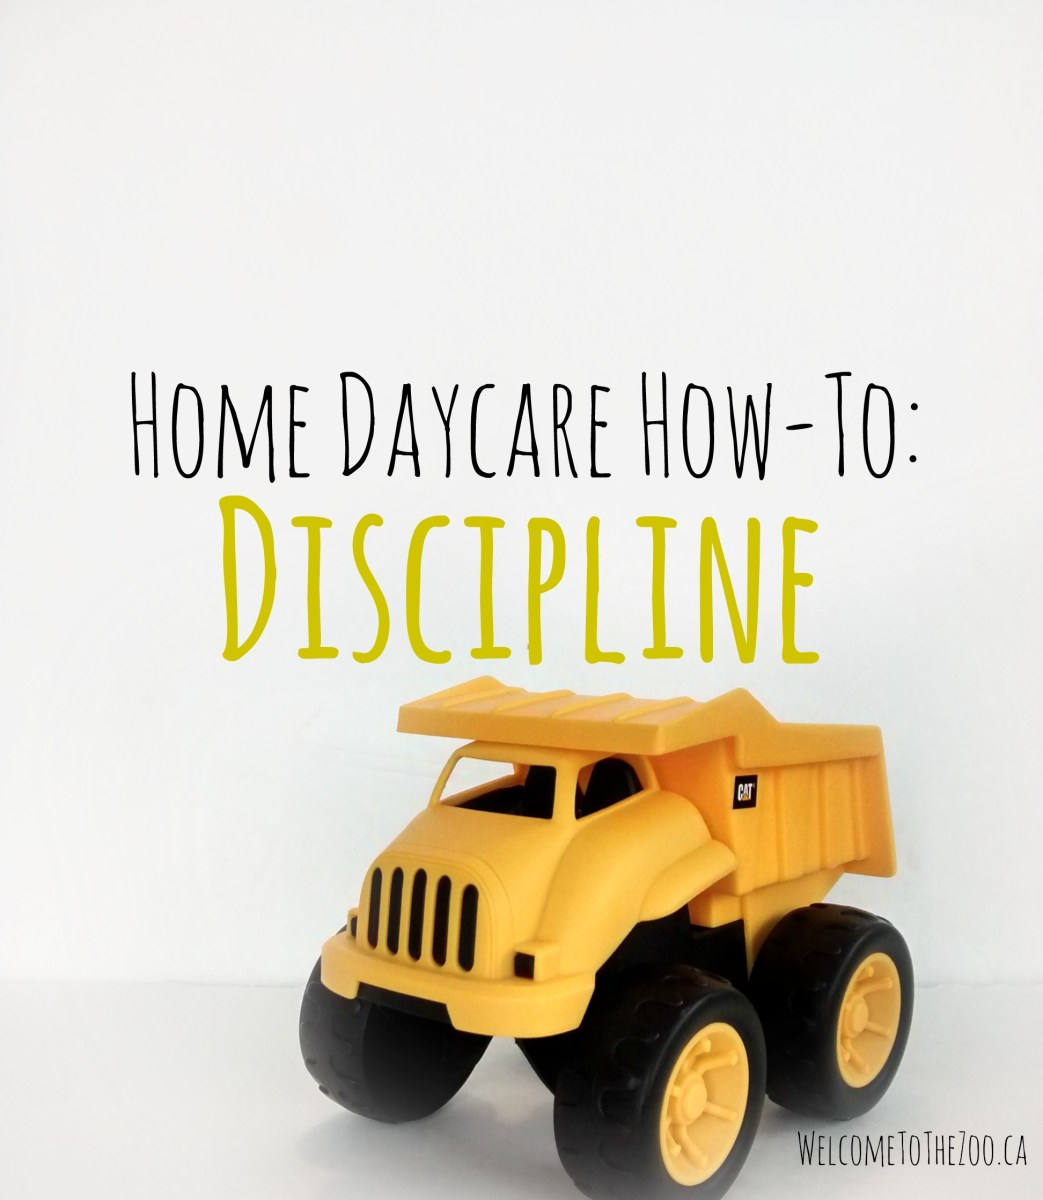 Home Daycare How-To: Discipline